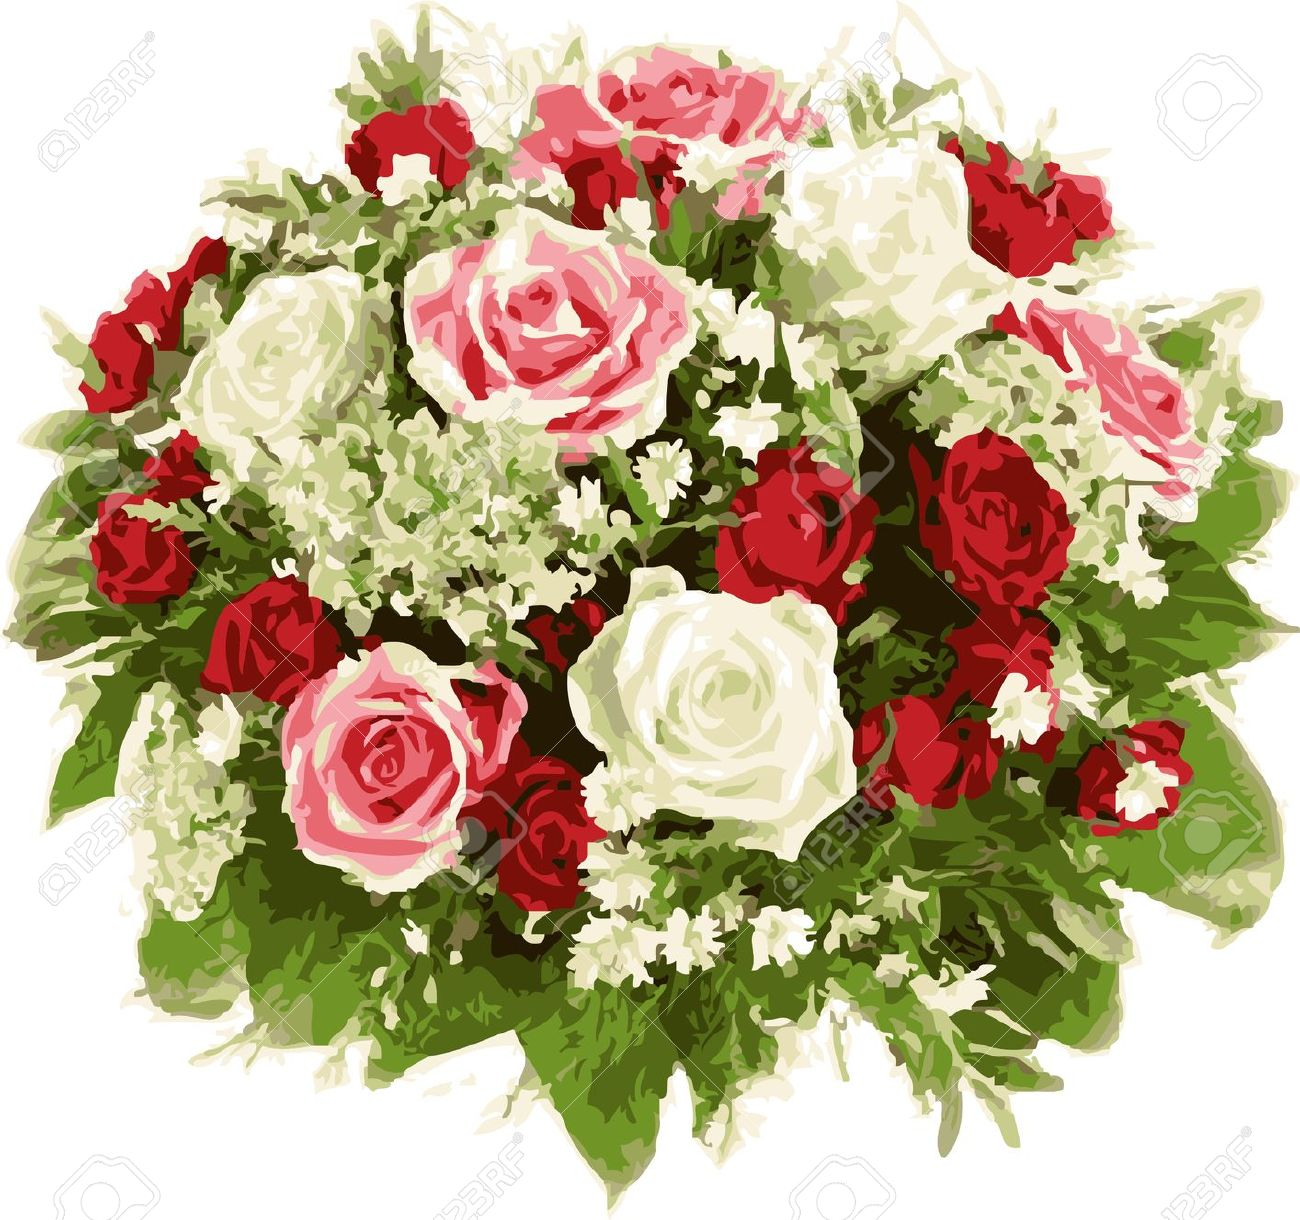 Bouquet Of Wedding Flowers. Red And White Roses. Royalty Free.